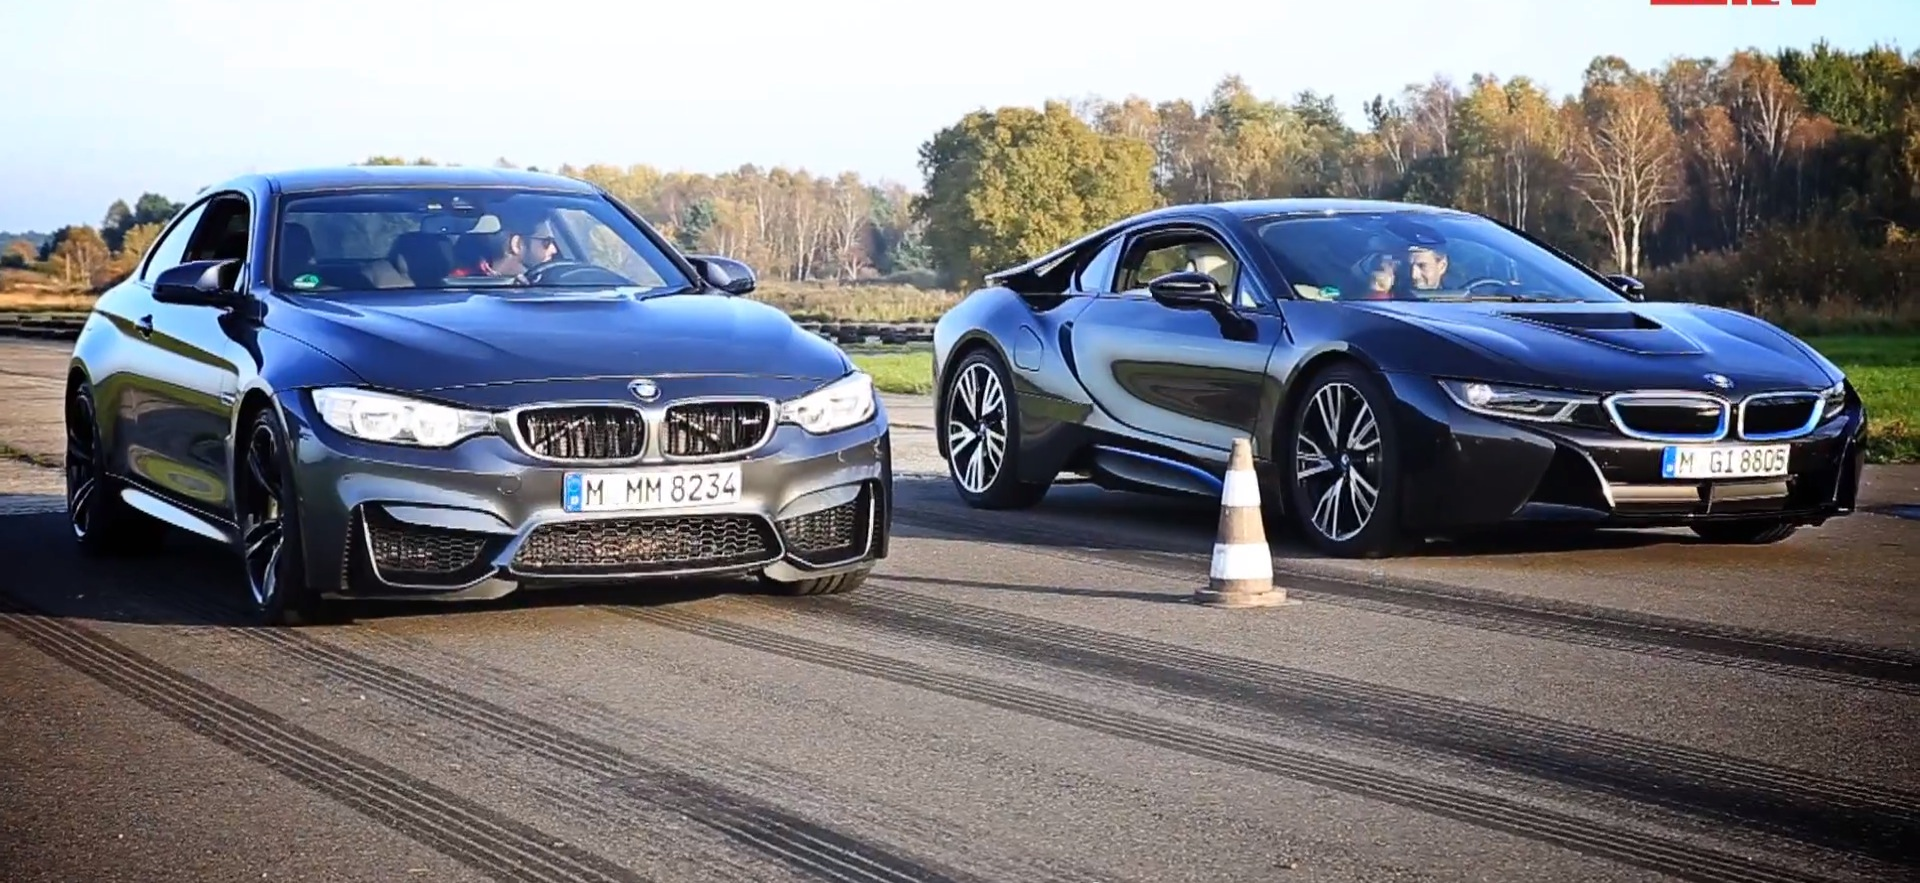 Bmw I8 Versus Manual M4 Is The Year S Hottest Drag Race Autoevolution